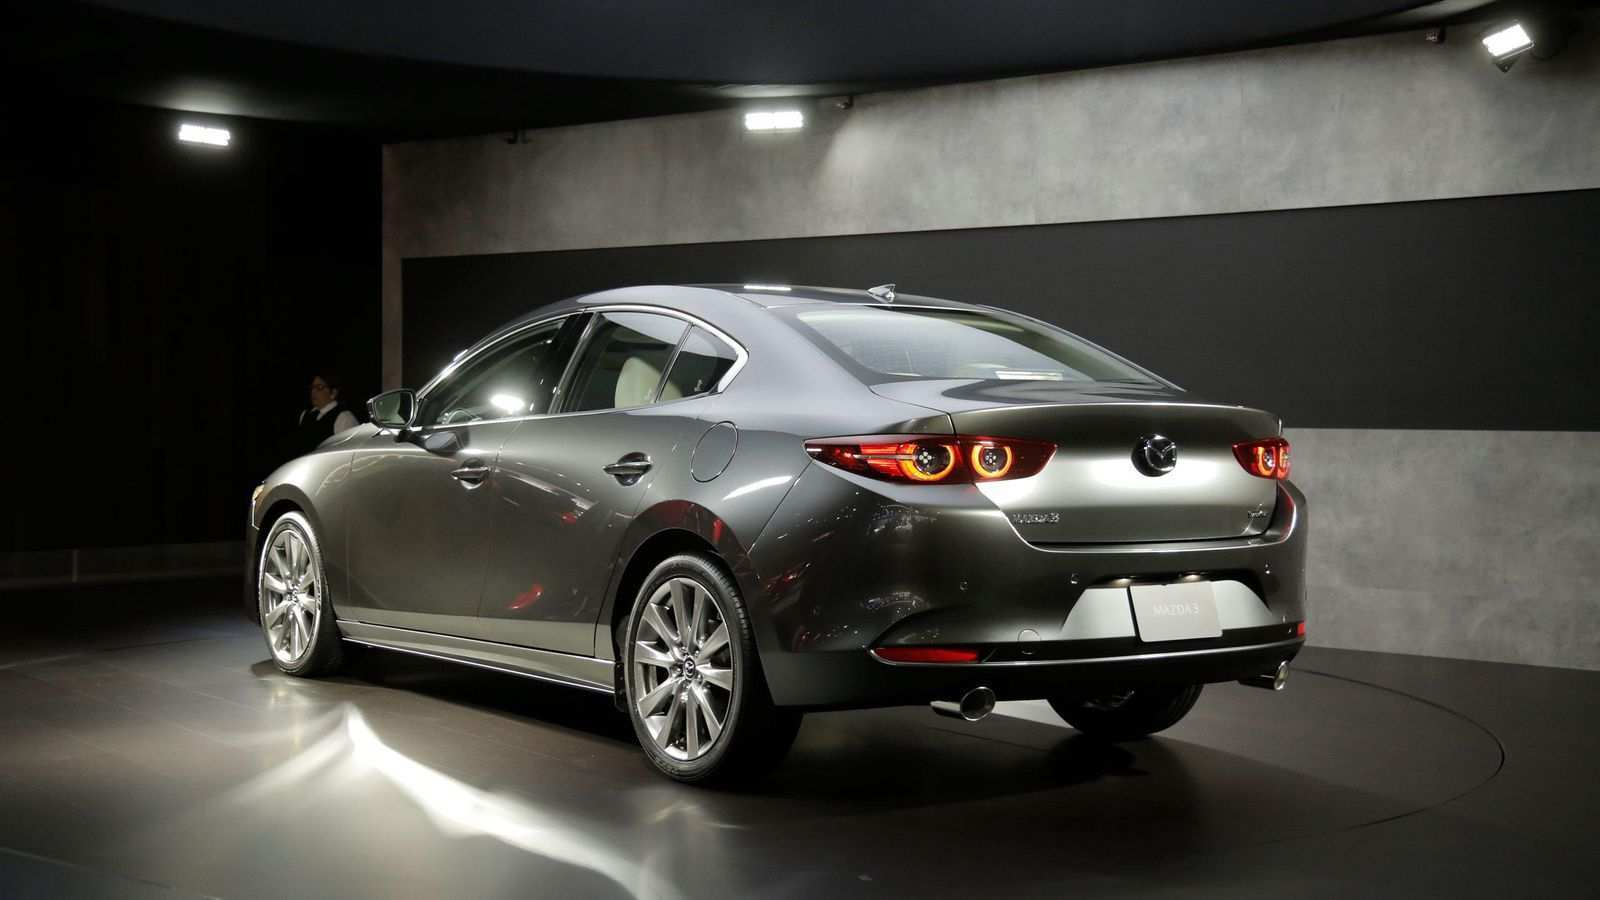 41 Concept of Mazda 3 2019 Forum Spy Shoot by Mazda 3 2019 Forum